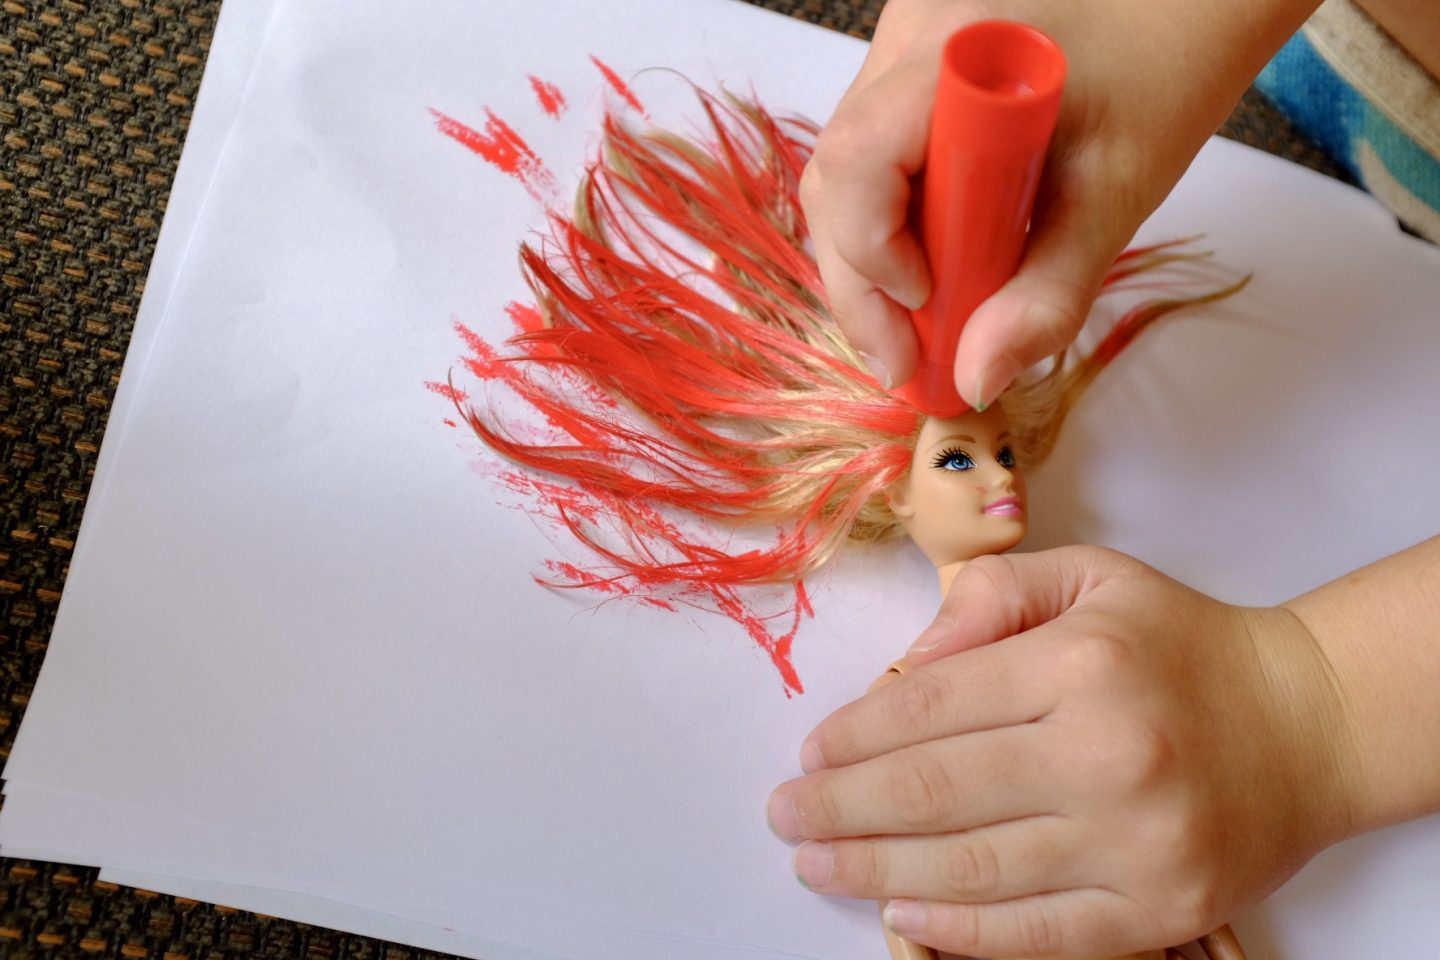 dye a barbie's hair red with paint sticks